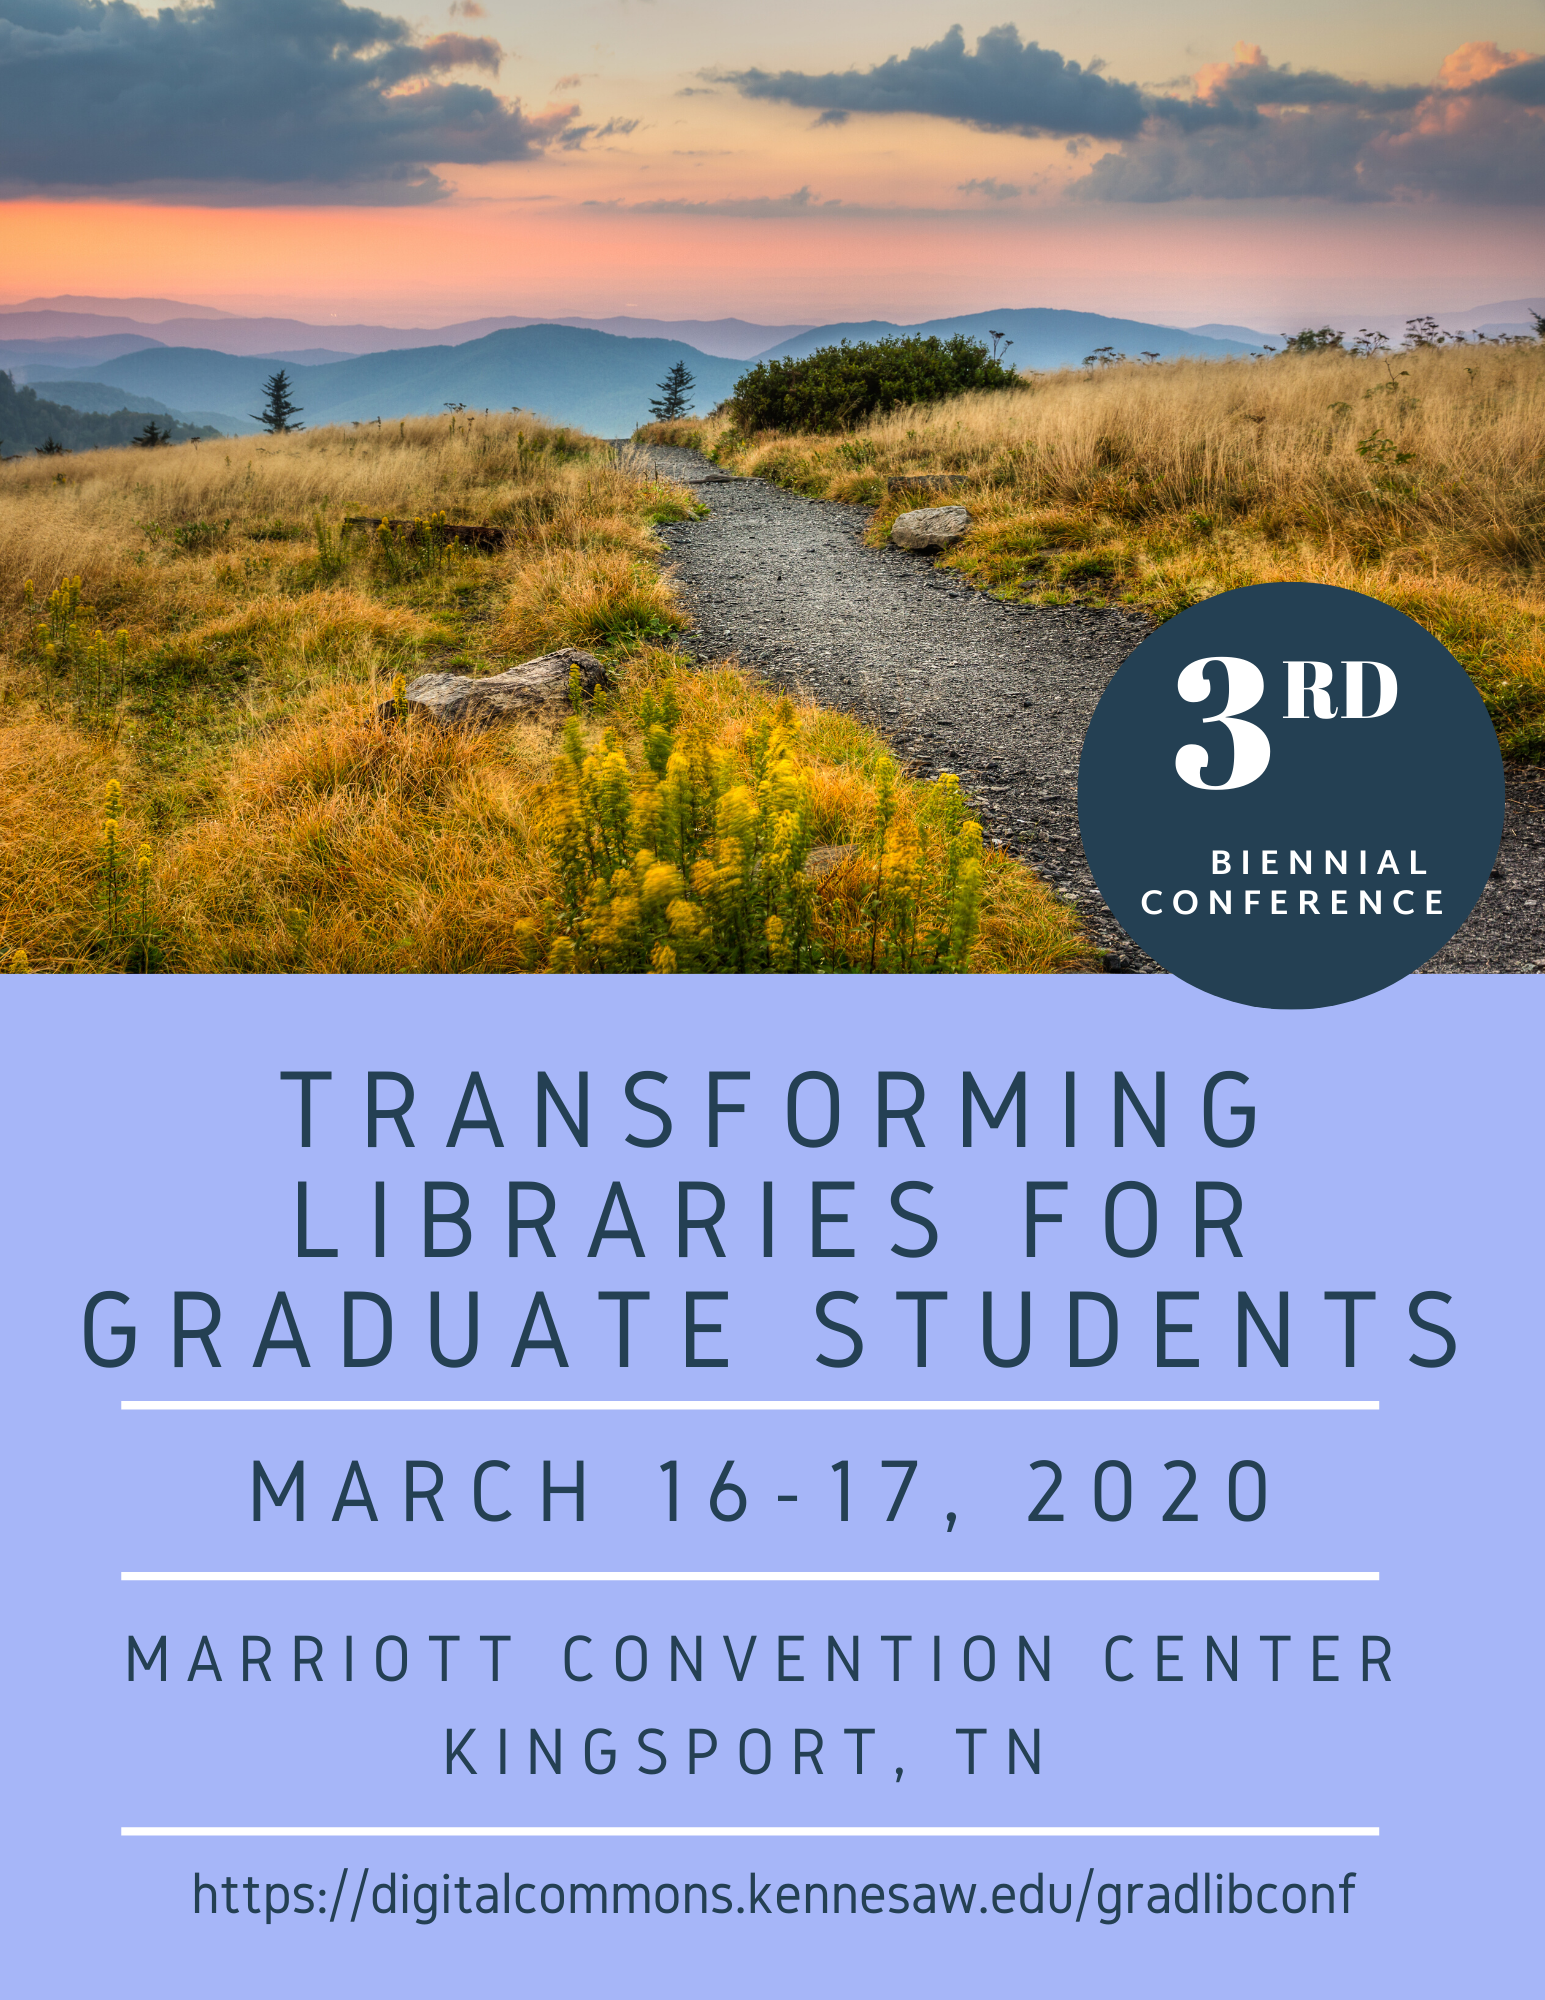 Transforming Libraries for Graduate Students